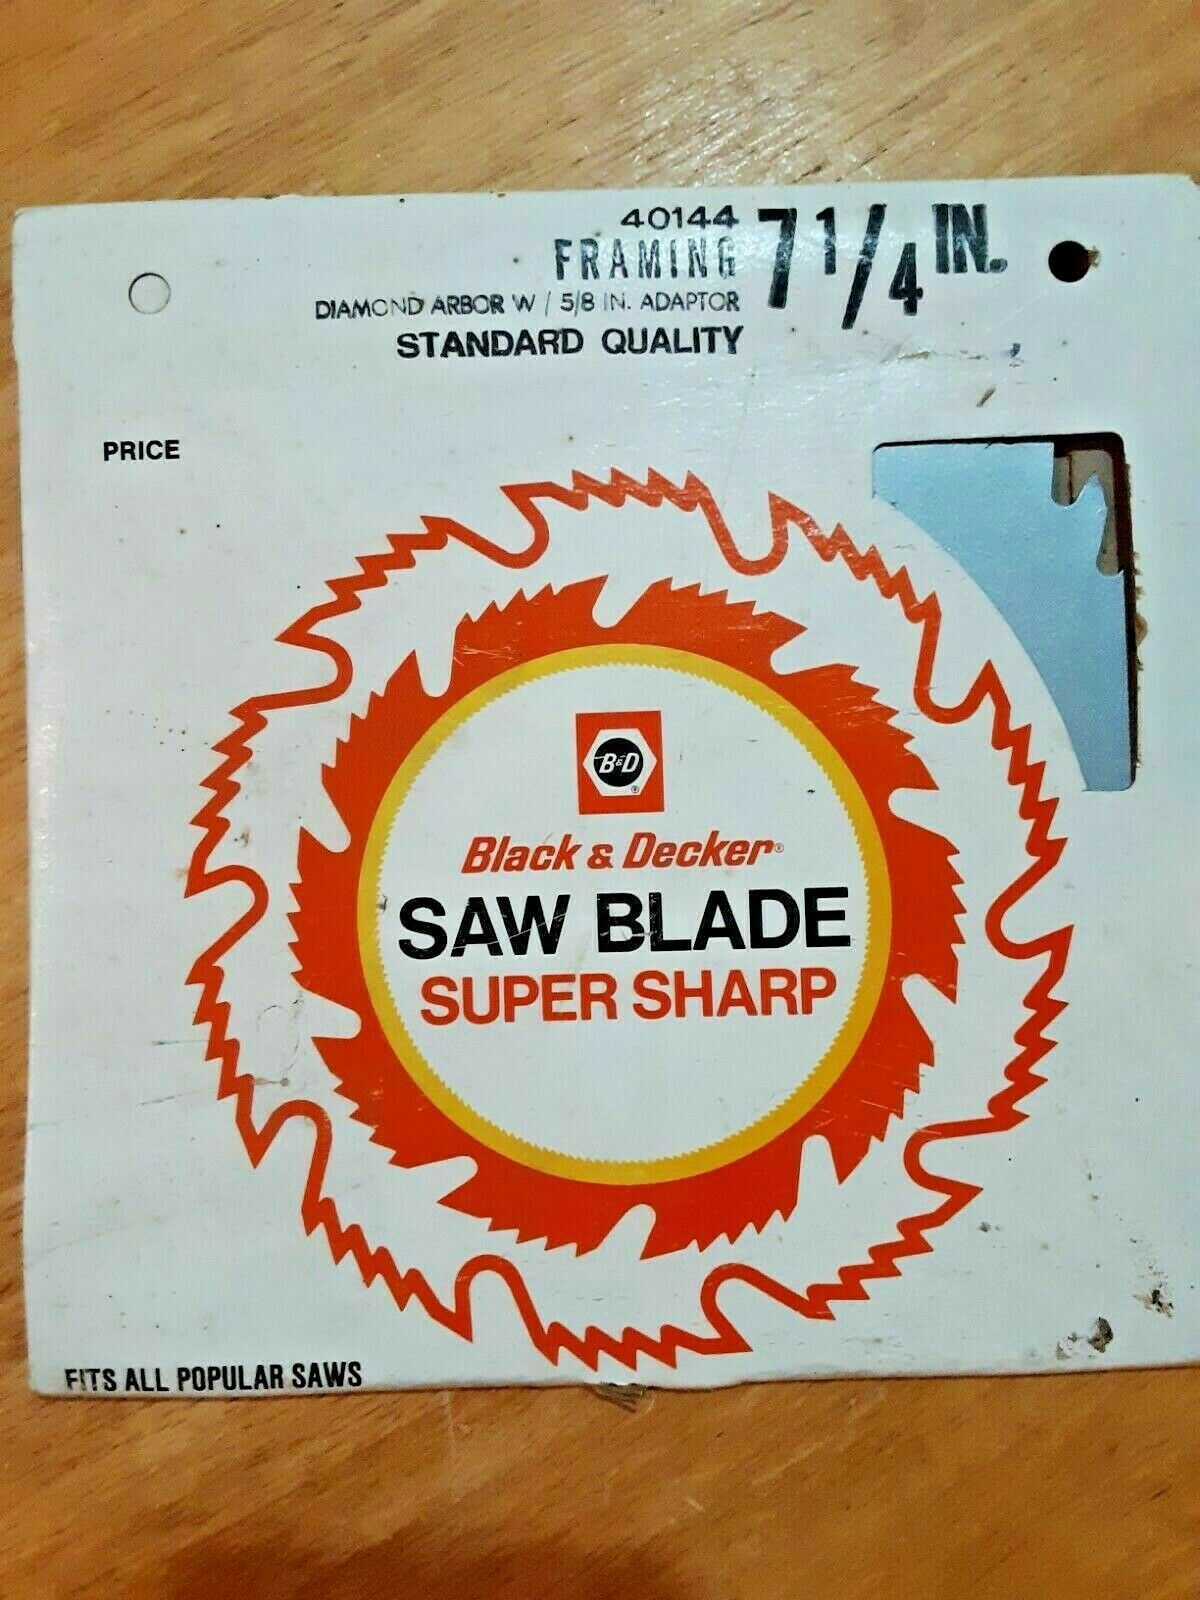 "Primary image for Black & Decker Circular Saw Blade Framing 7 1/4"", Diamond Arbor Hole only 40144"